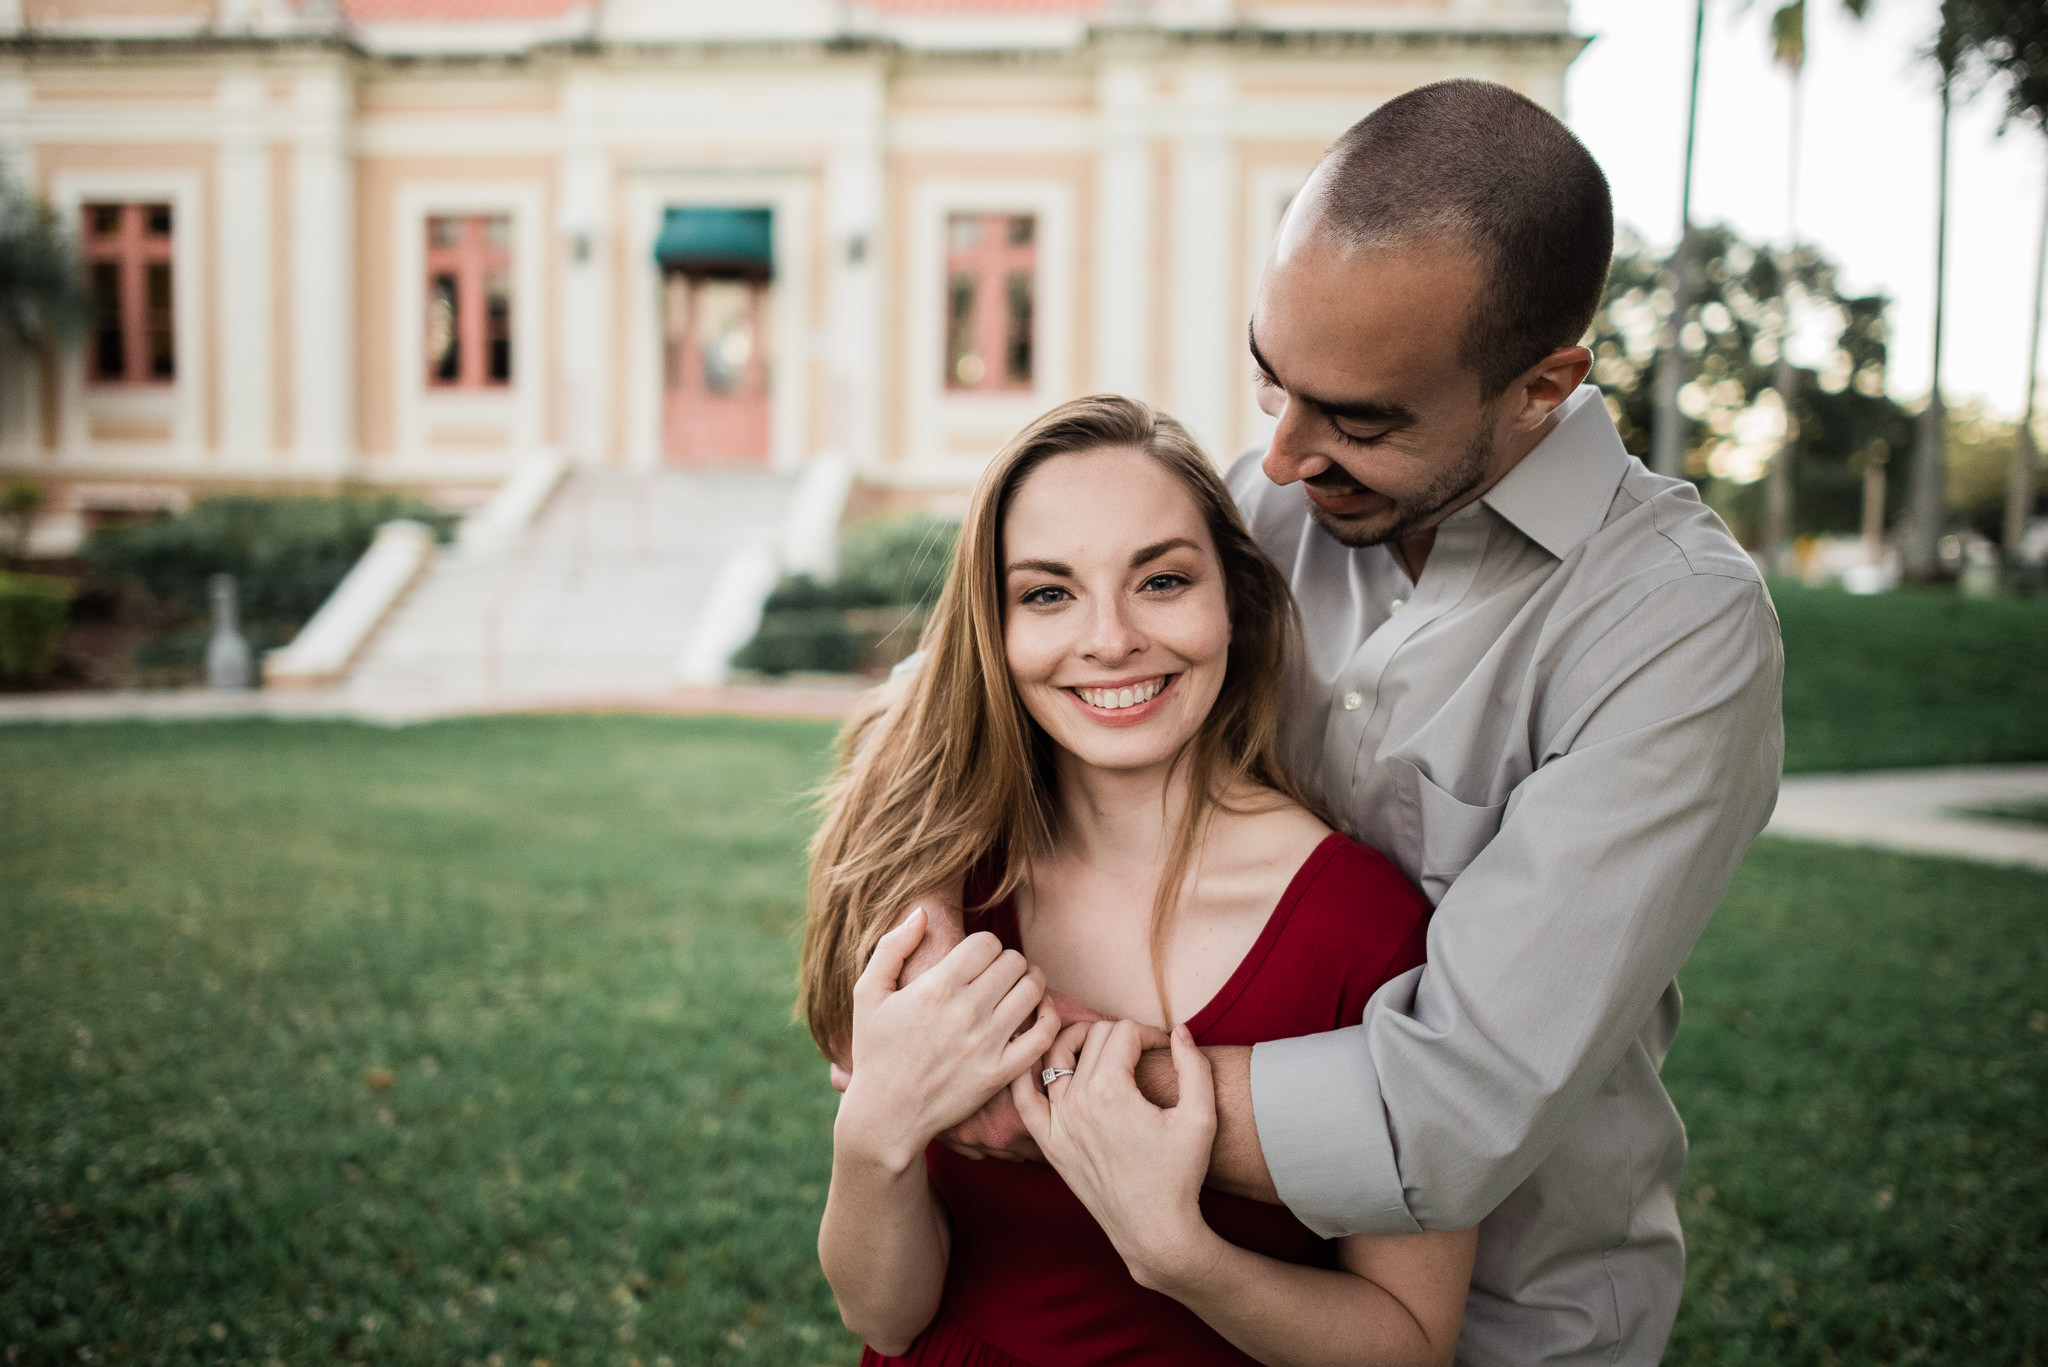 TAMPA_ENGAGEMENT_PHOTOGRAPHER_SMMZ_6901.jpg